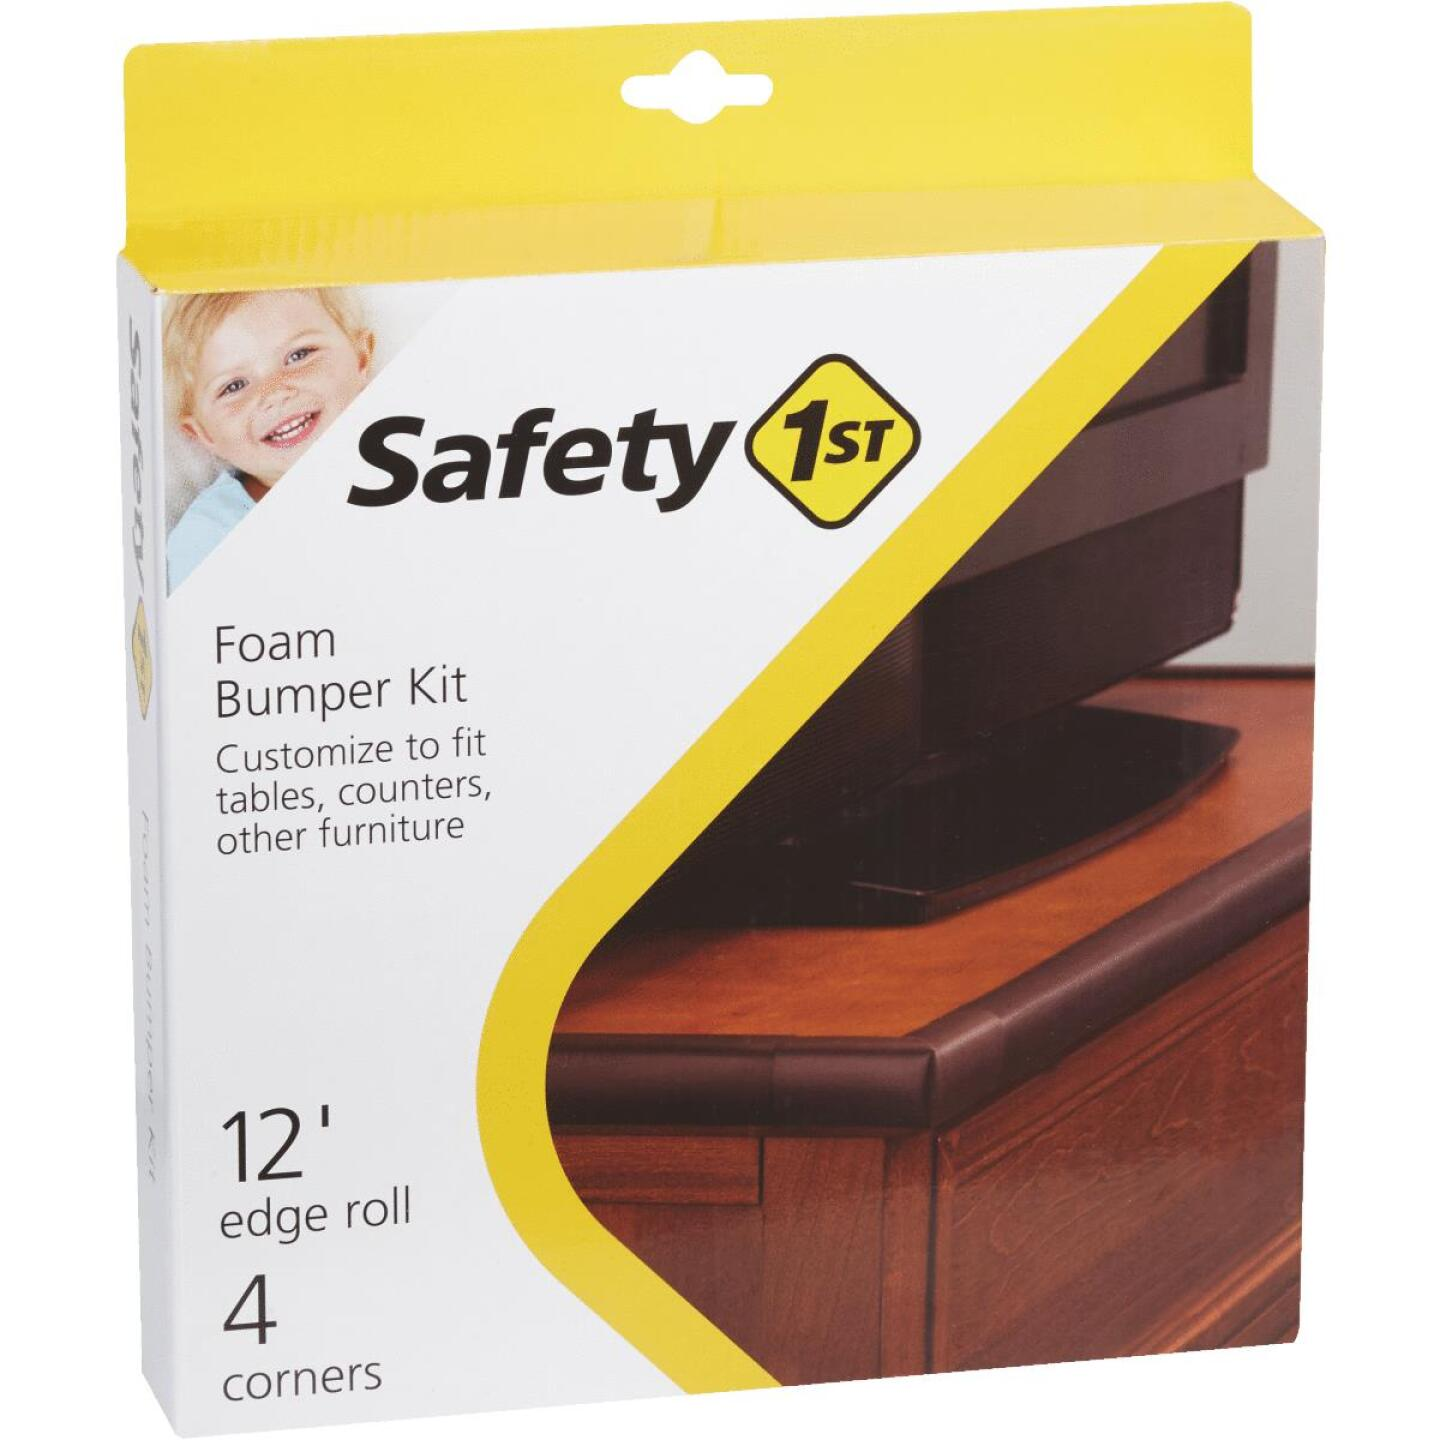 Safety 1st Adhesive Foam Brown Edge Roll and Corners Bumper Kit Image 1